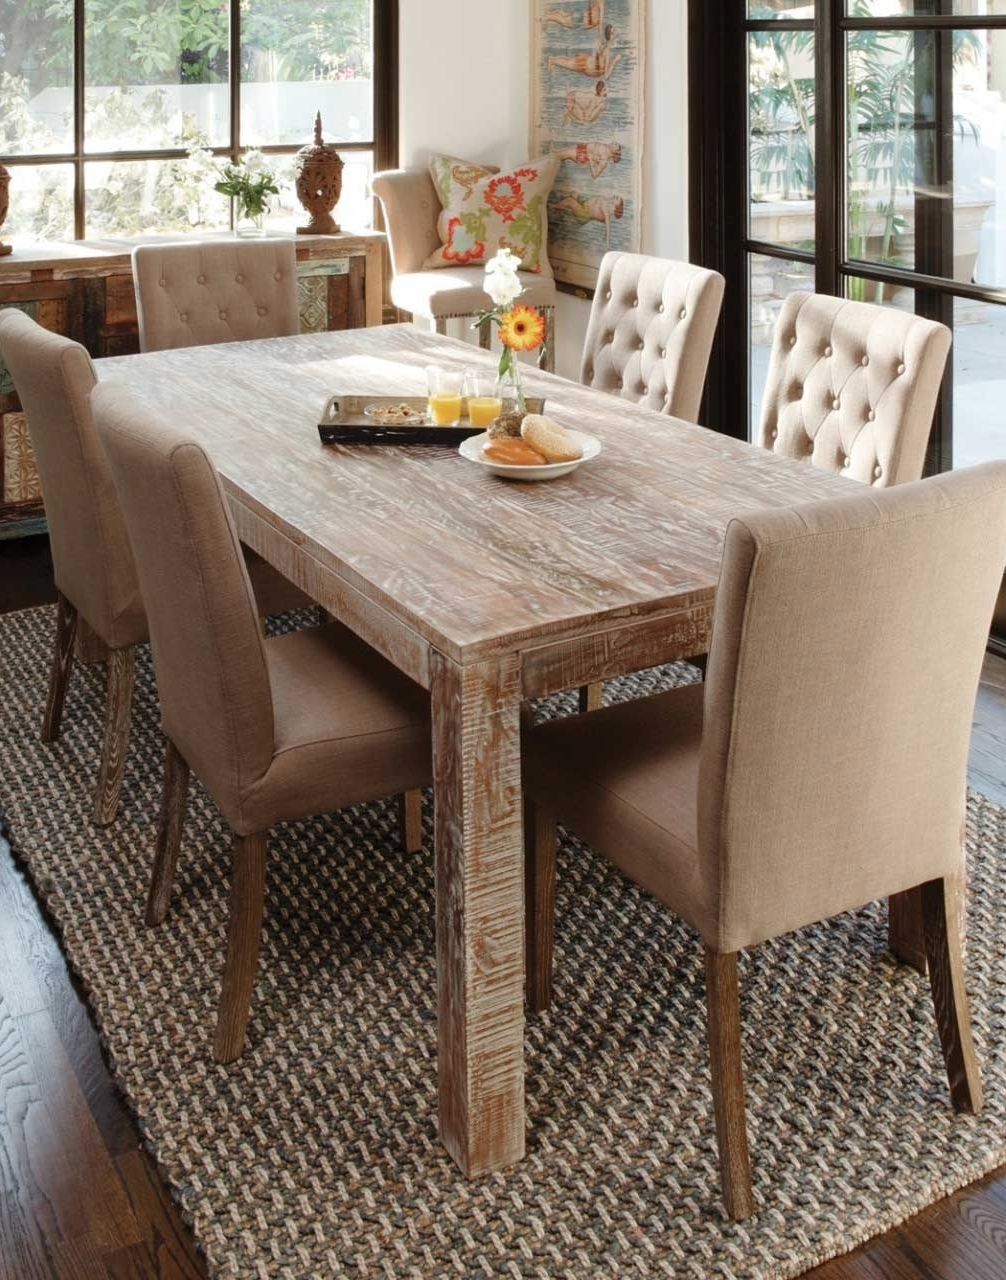 30 amazing rustic dining room design ideas for Rustic dining room